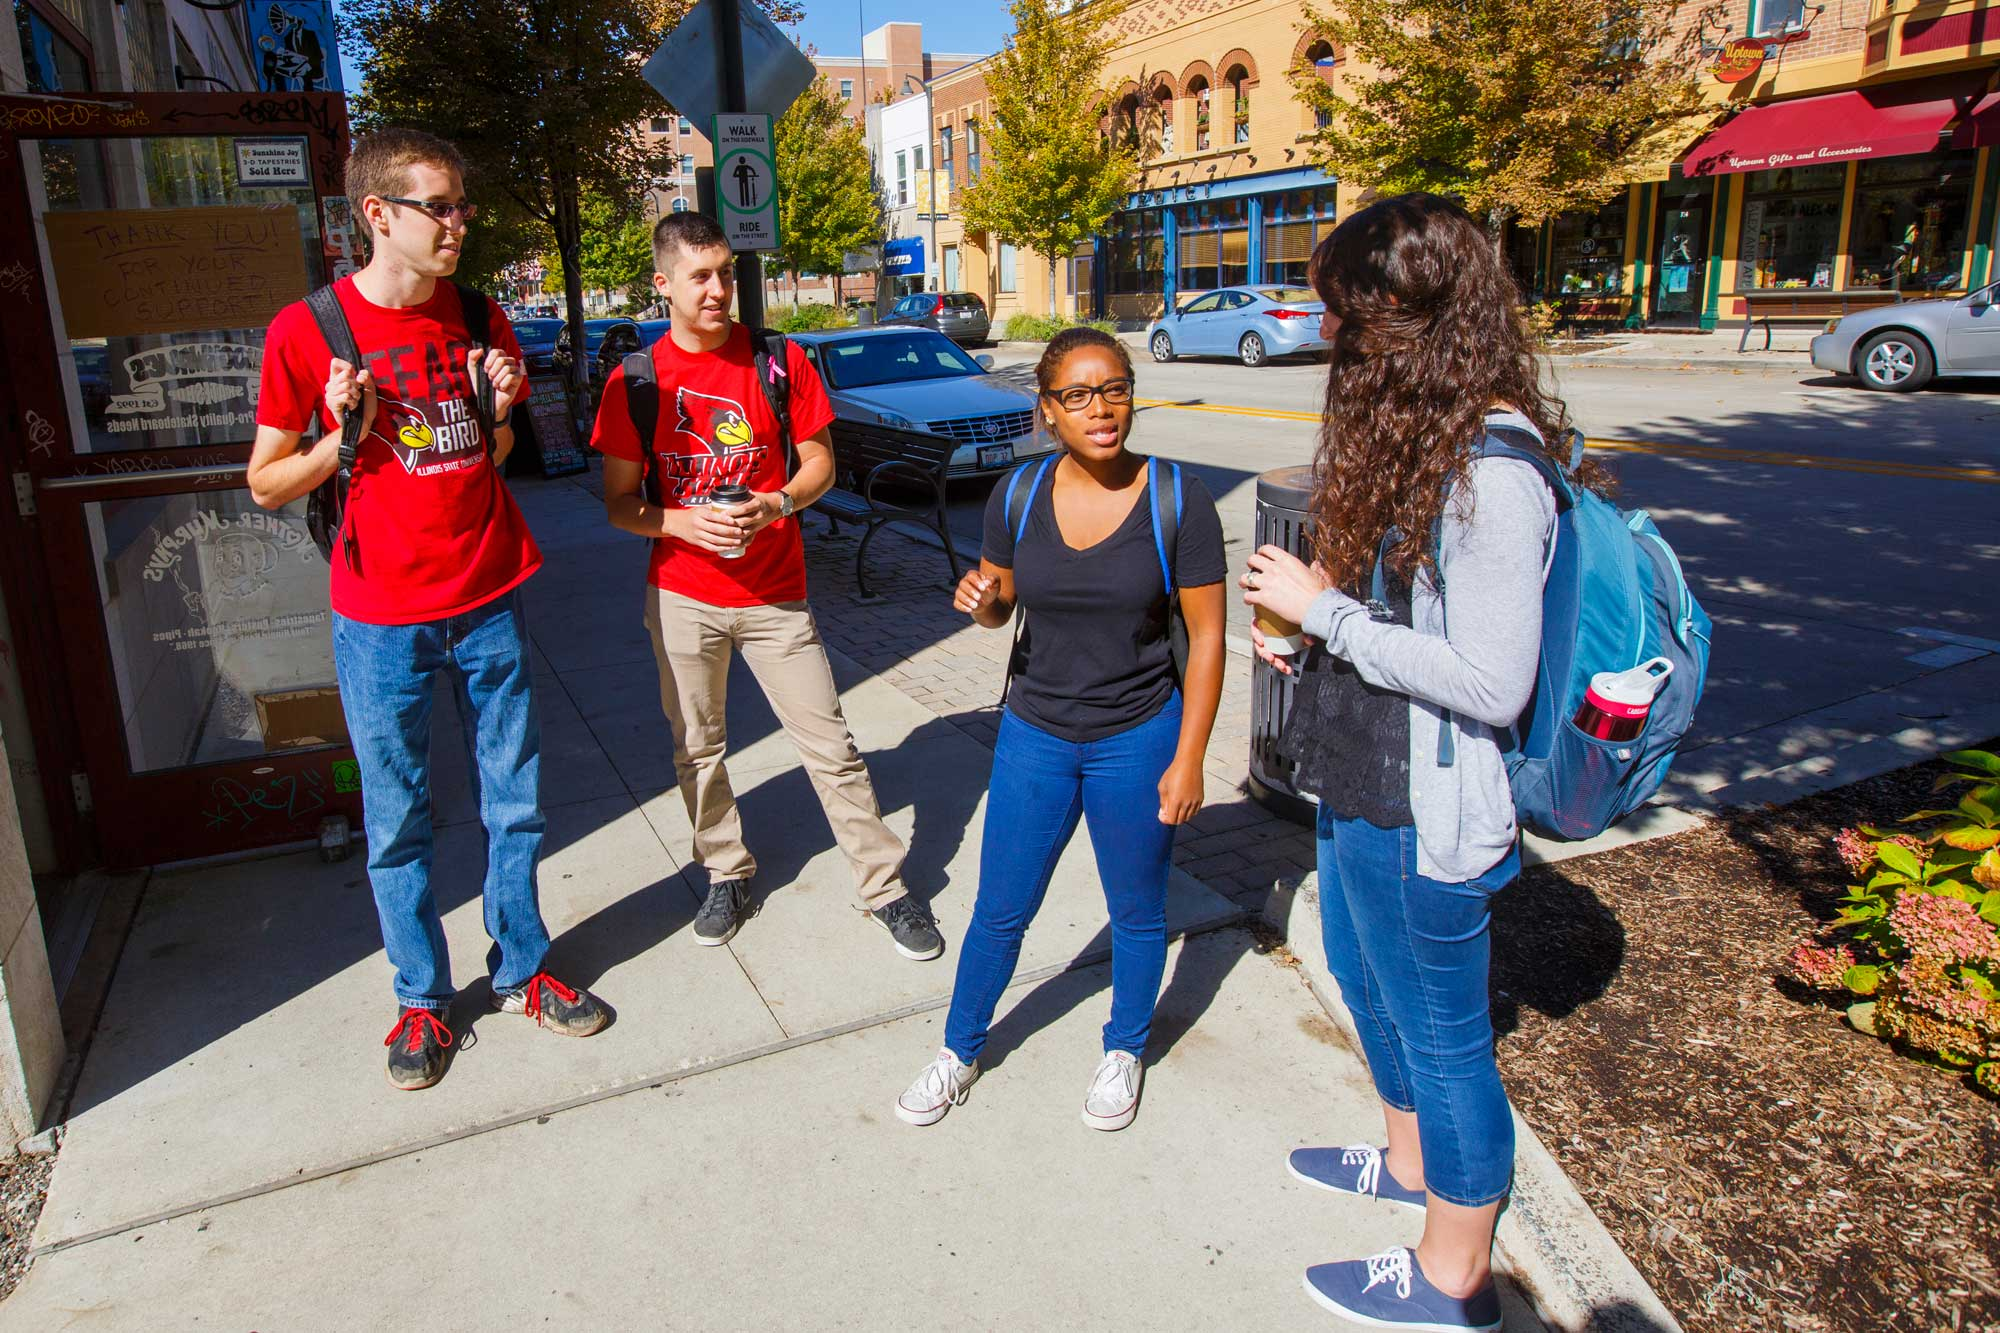 INTO ISU Students talking in town